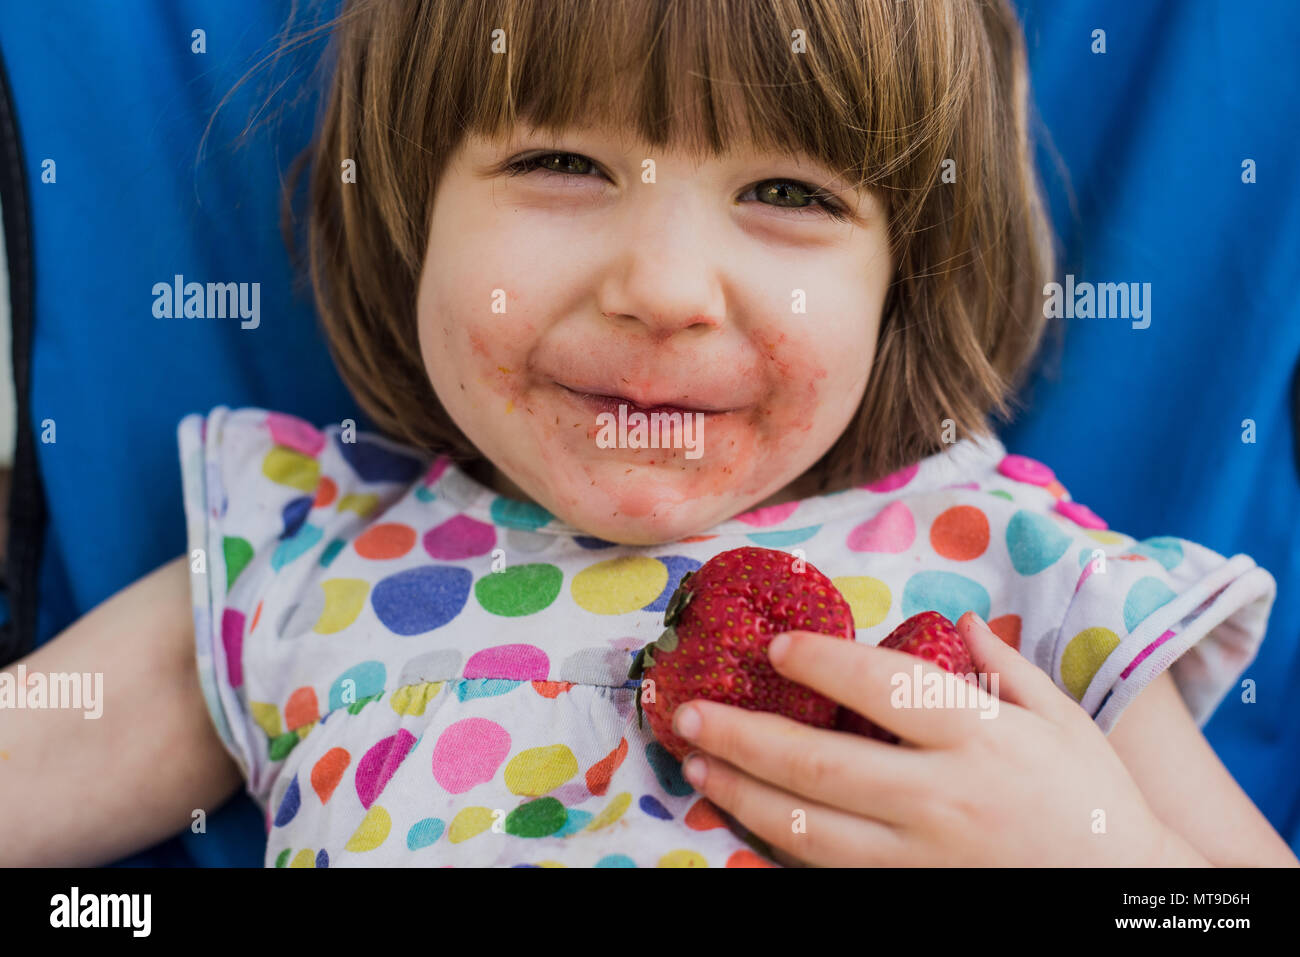 A 3-year old toddler eats a strawberry. - Stock Image